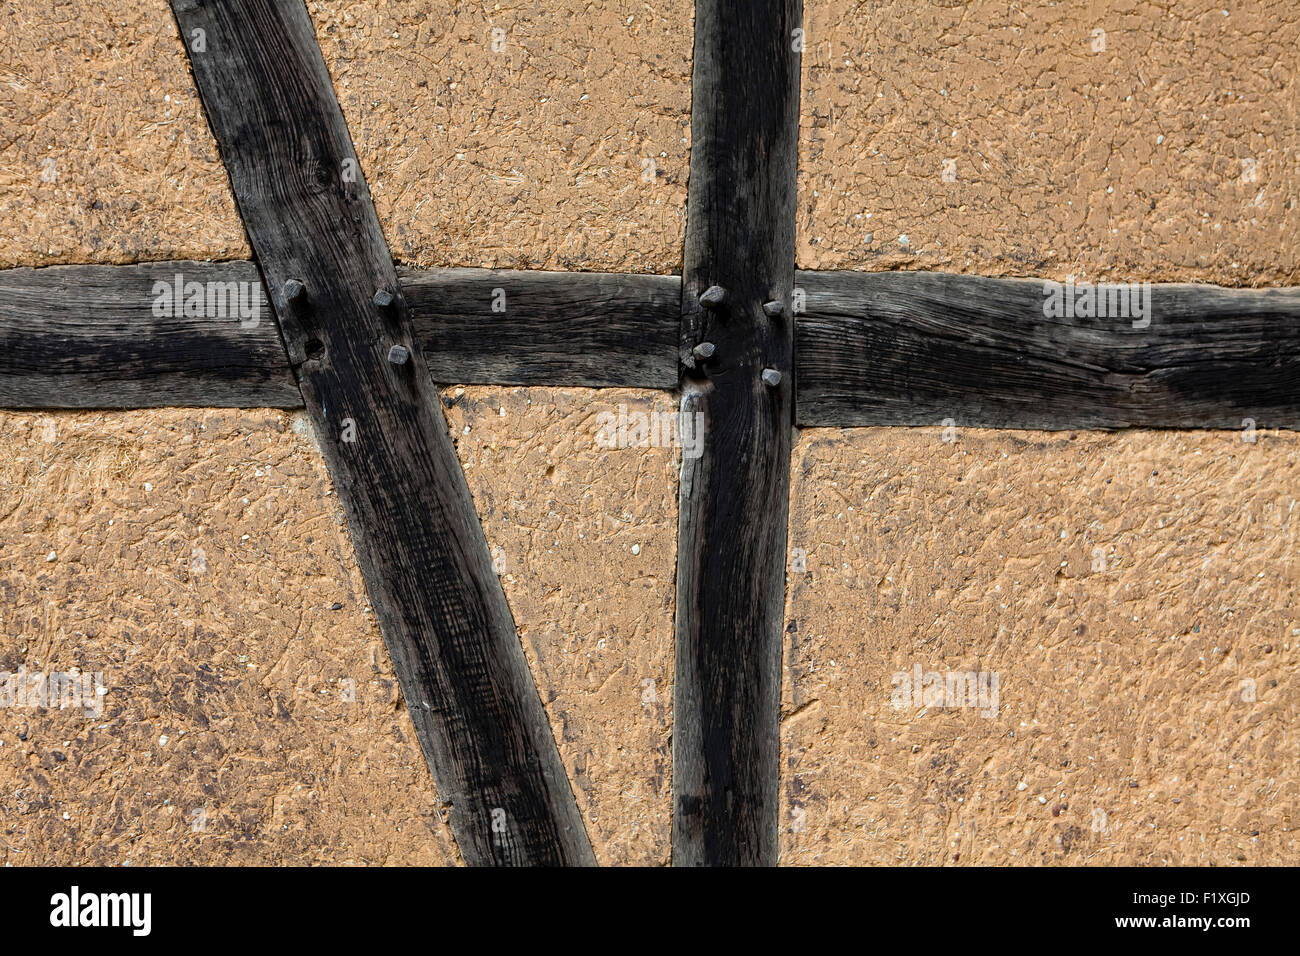 Old half-timbered wall, wooden beams with clay, 17th century, Germany, Europe, - Stock Image